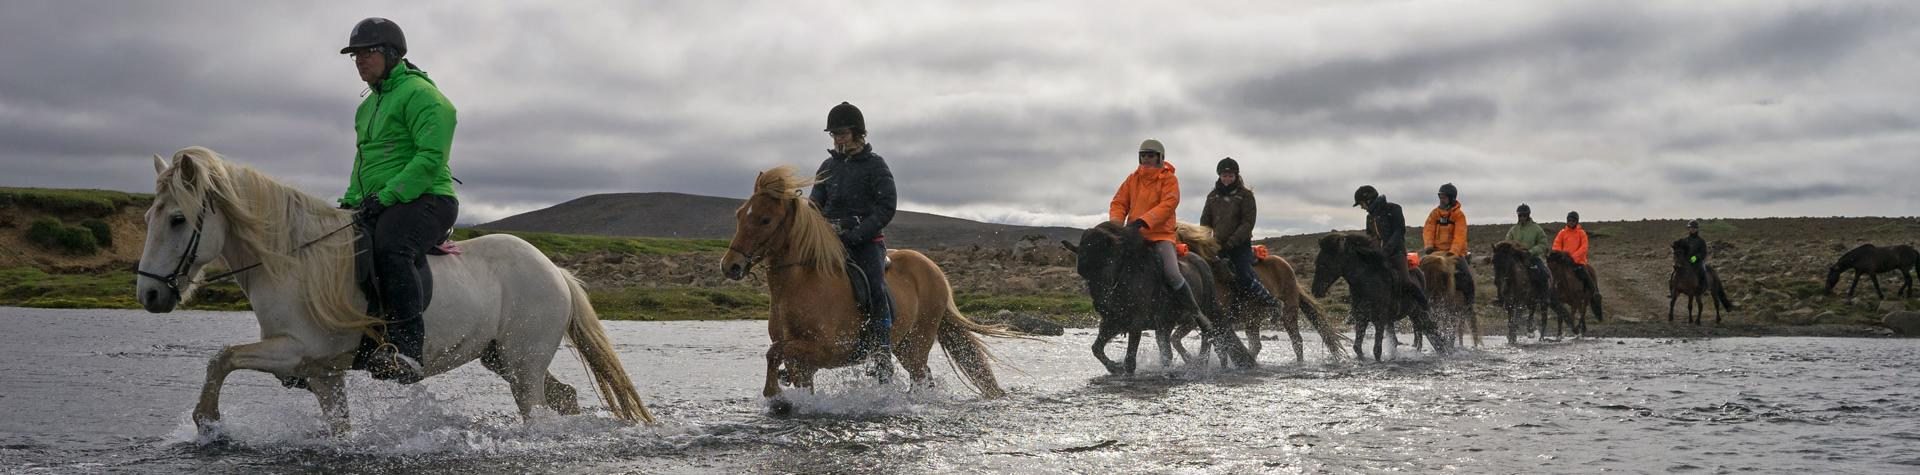 Horse riding in Iceland.